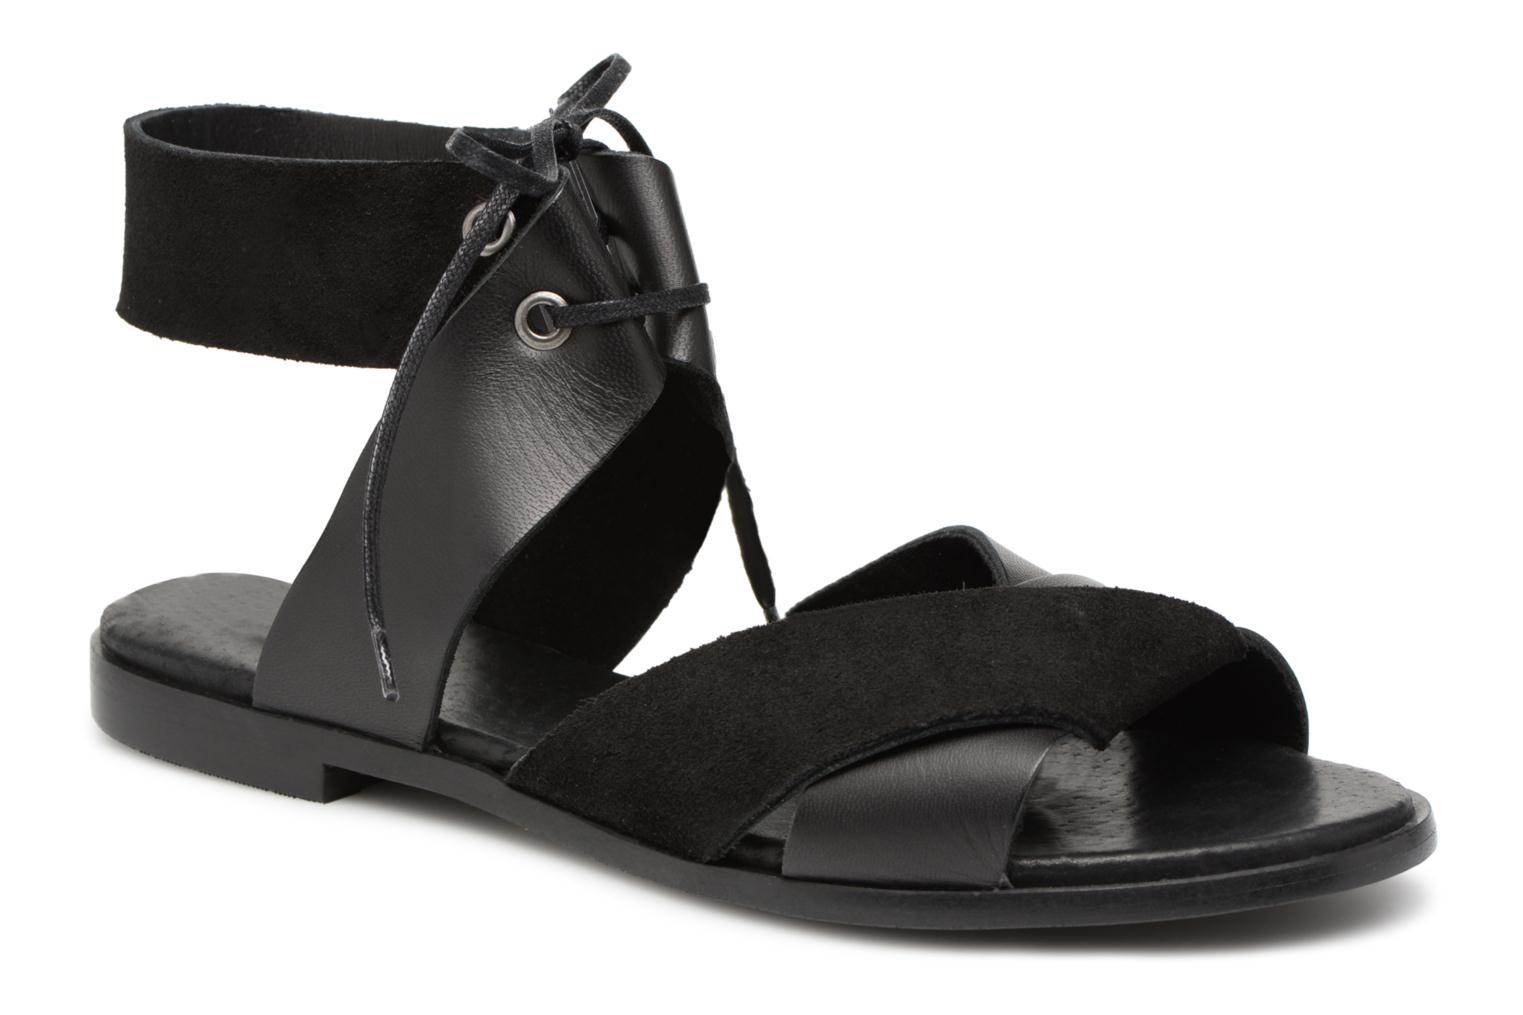 Marques Chaussure femme Shoe the bear femme ALLY L 110 BLACK